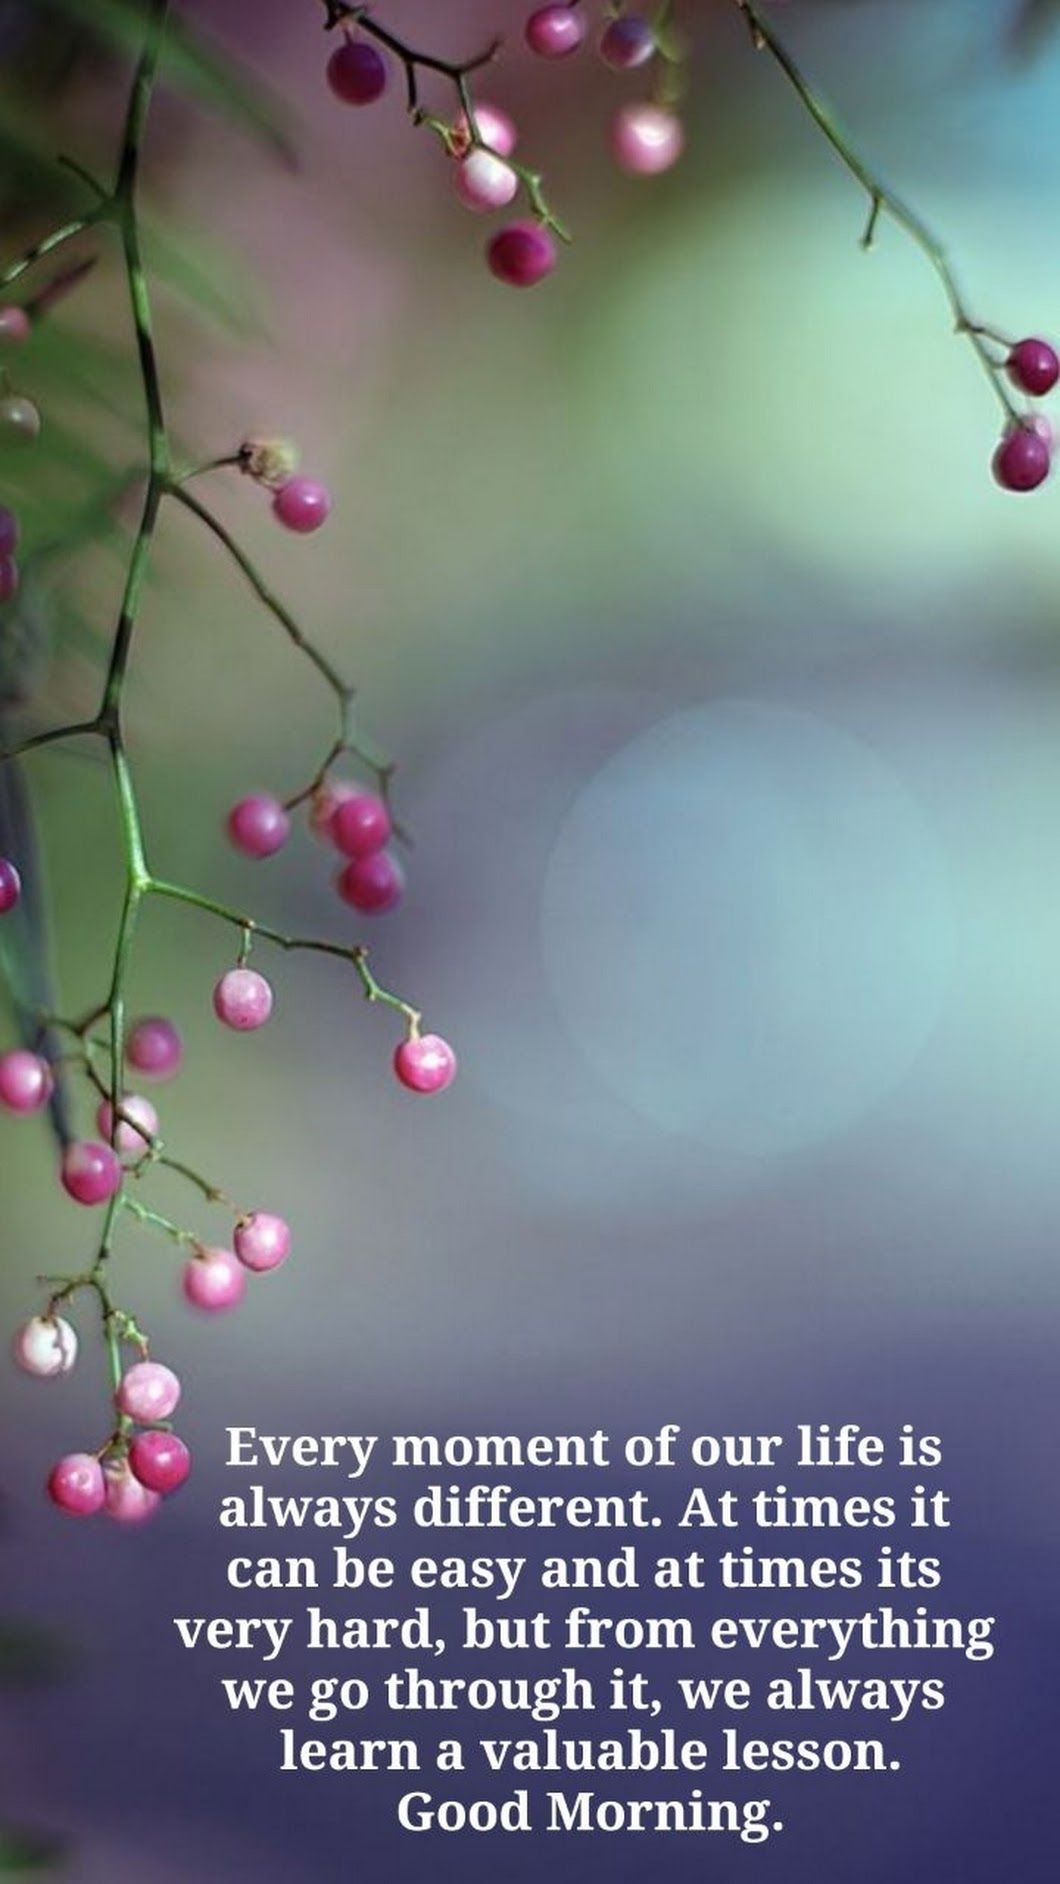 Good Morninghave A Lovely Day Health And Wisdom Quotes